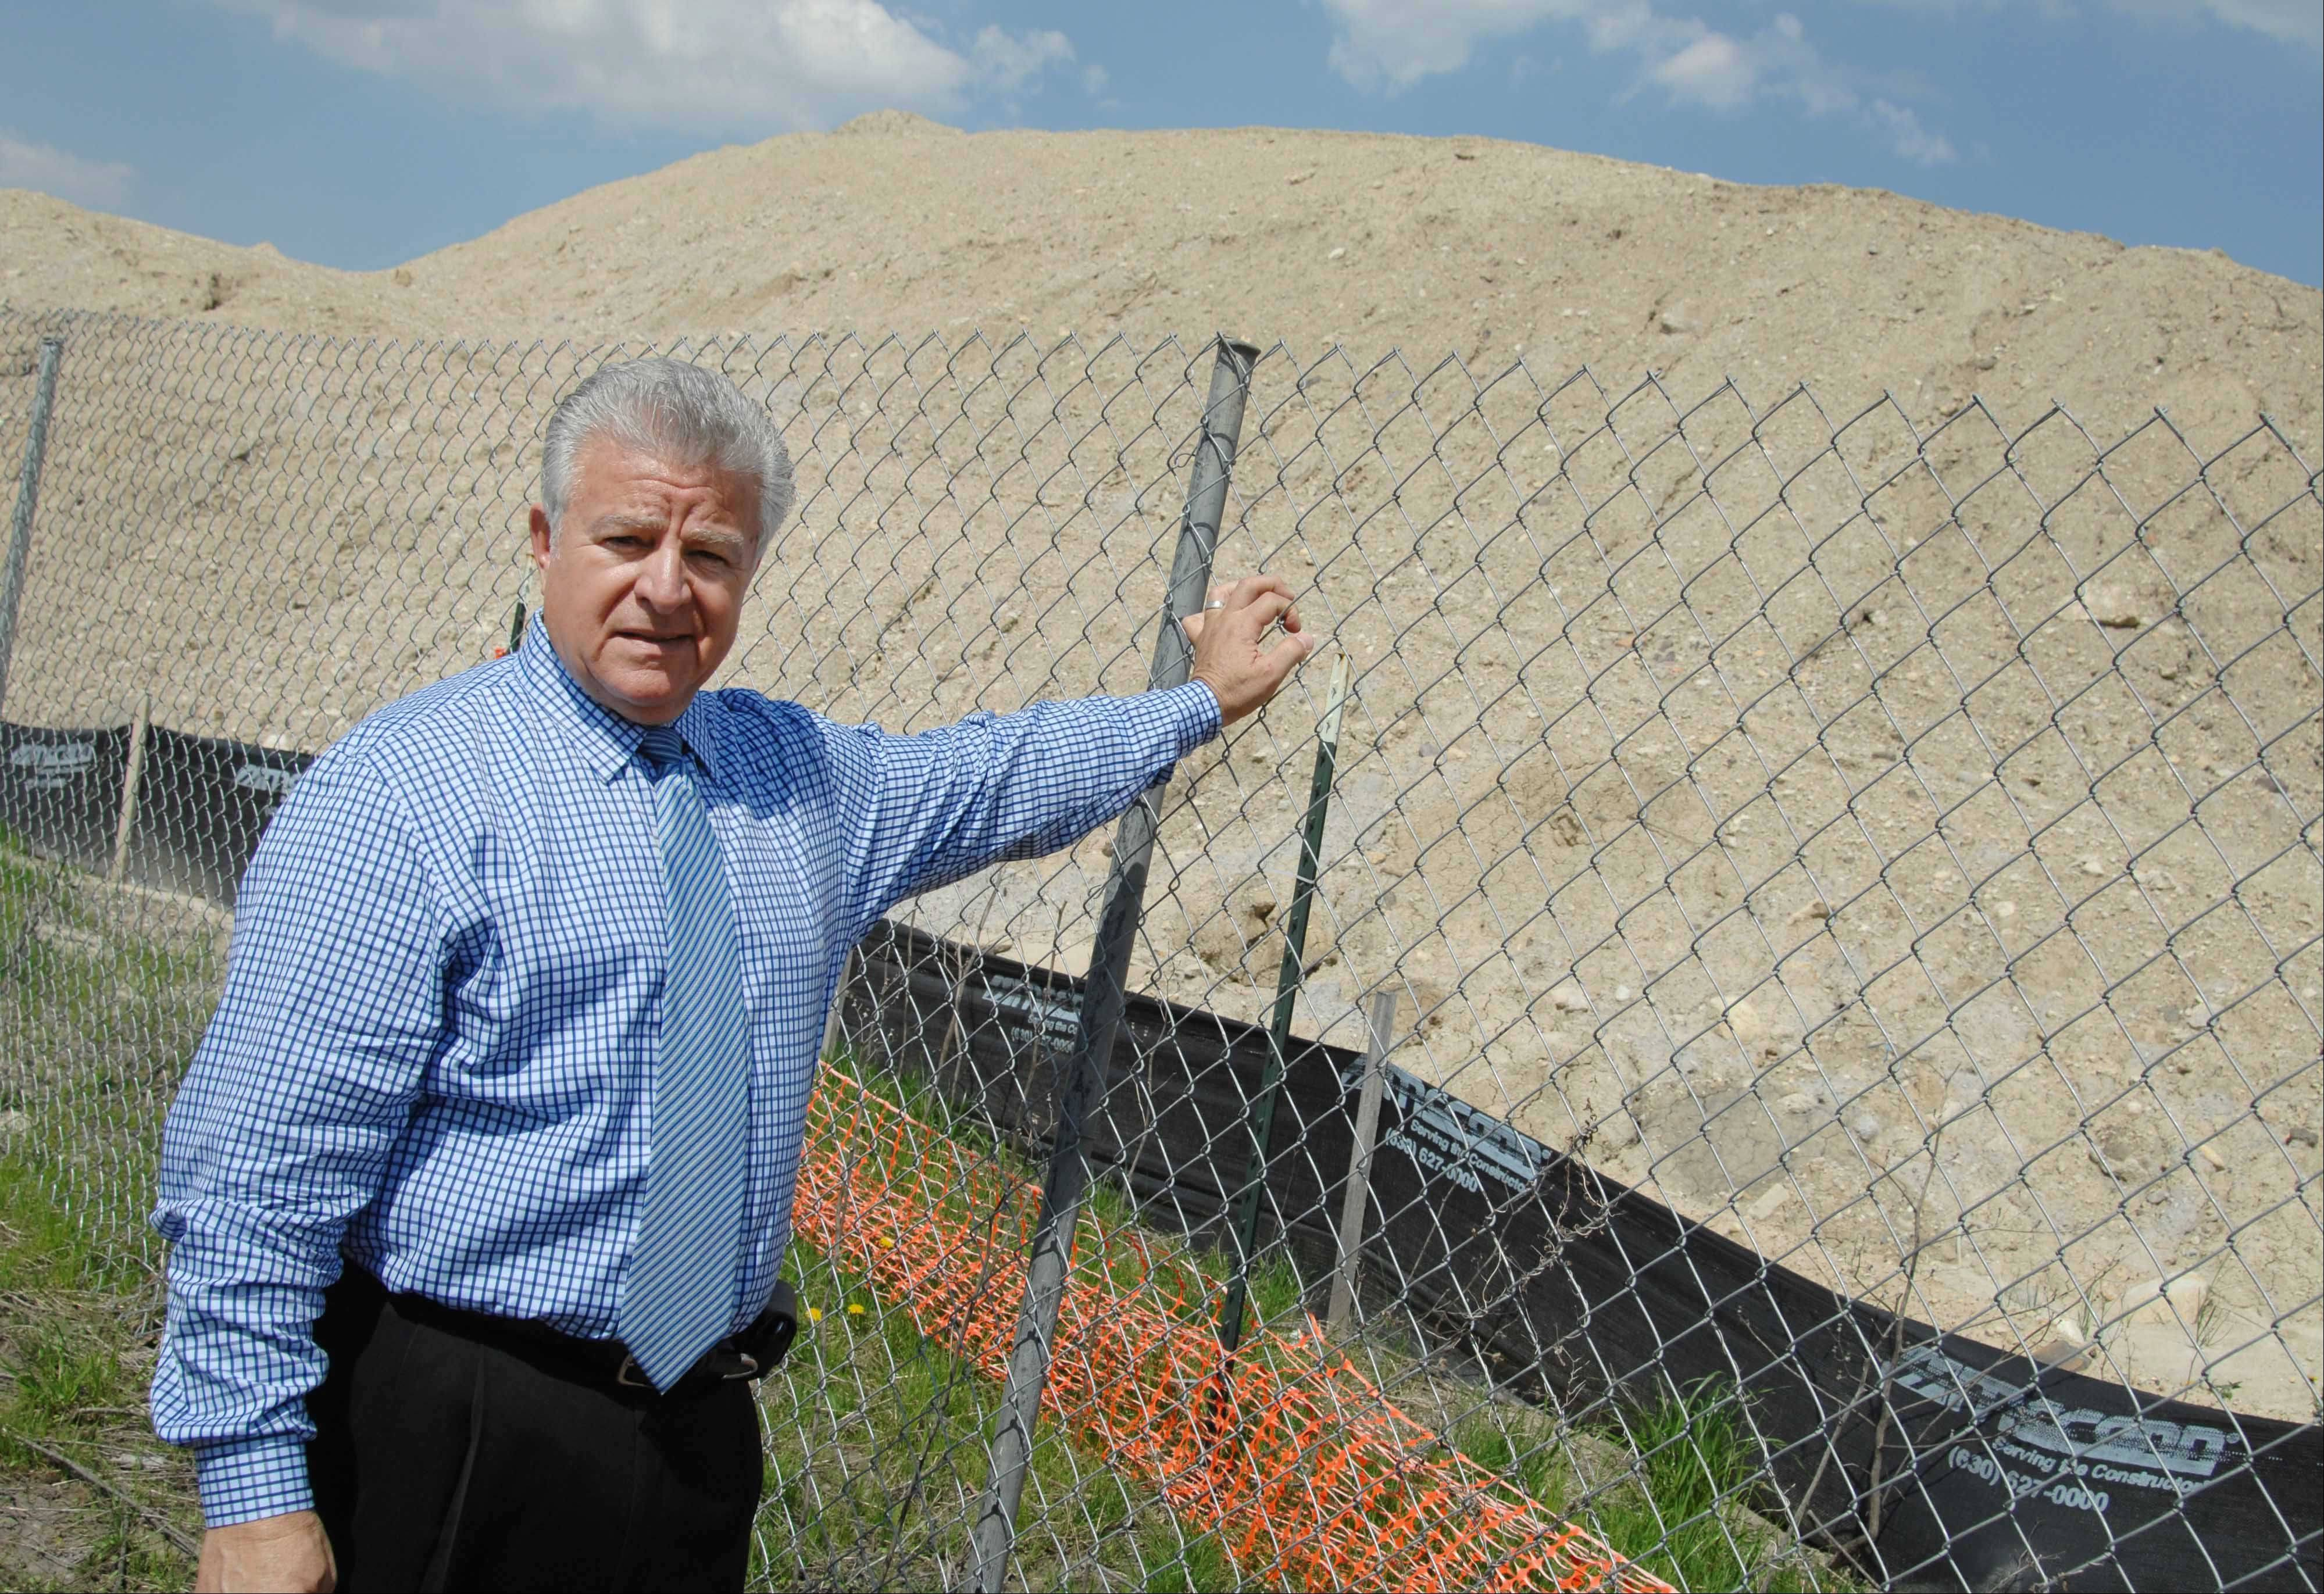 Carol Stream Village President Frank Saverino said Wednesday during his annual State of the Village address that a flood control project planned at Armstrong Park will help mitigate flooding in the area — but won't solve it completely. A large dirt mound sits at the construction site now, but the project is expected to begin this year.